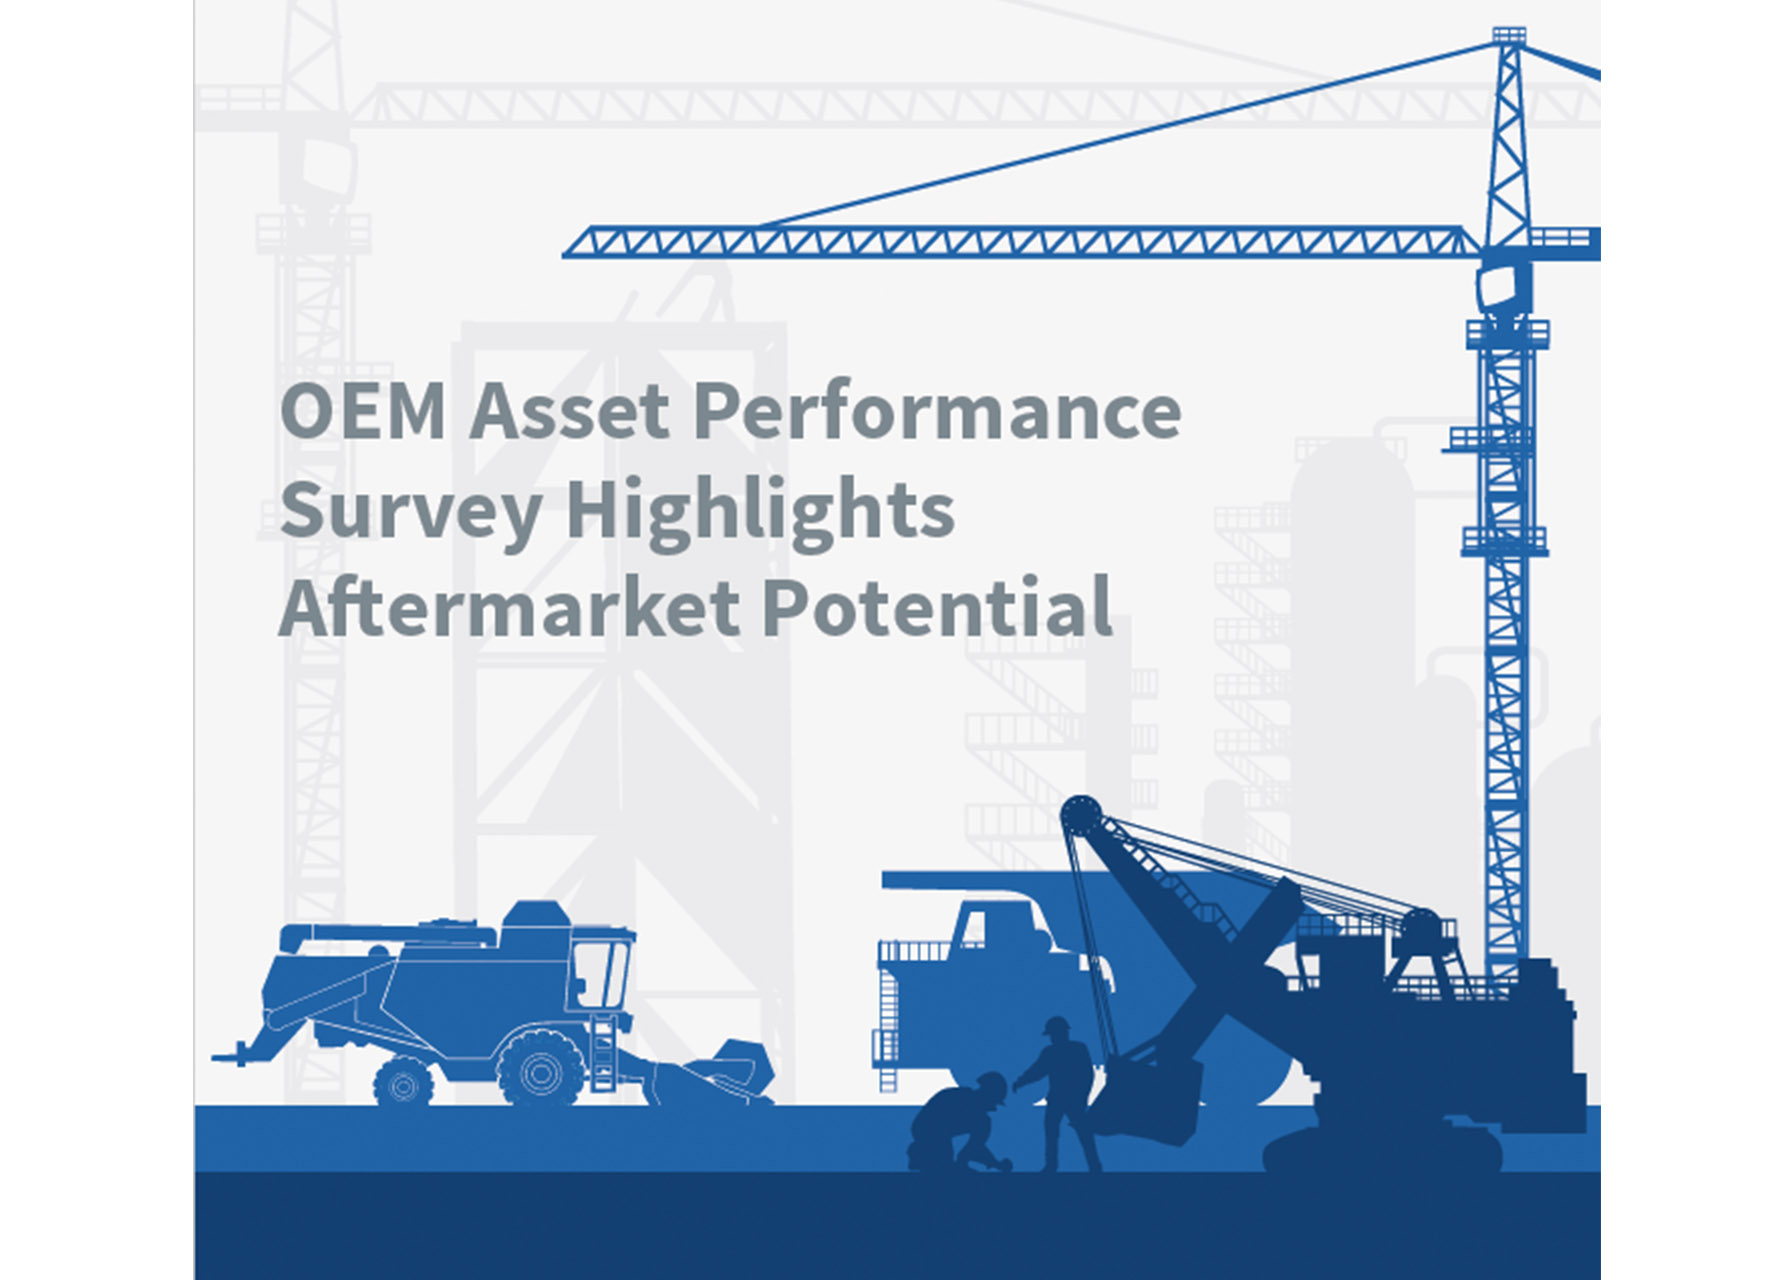 OEM Asset Performance Survey Highlights Aftermarket Potential thumbnail